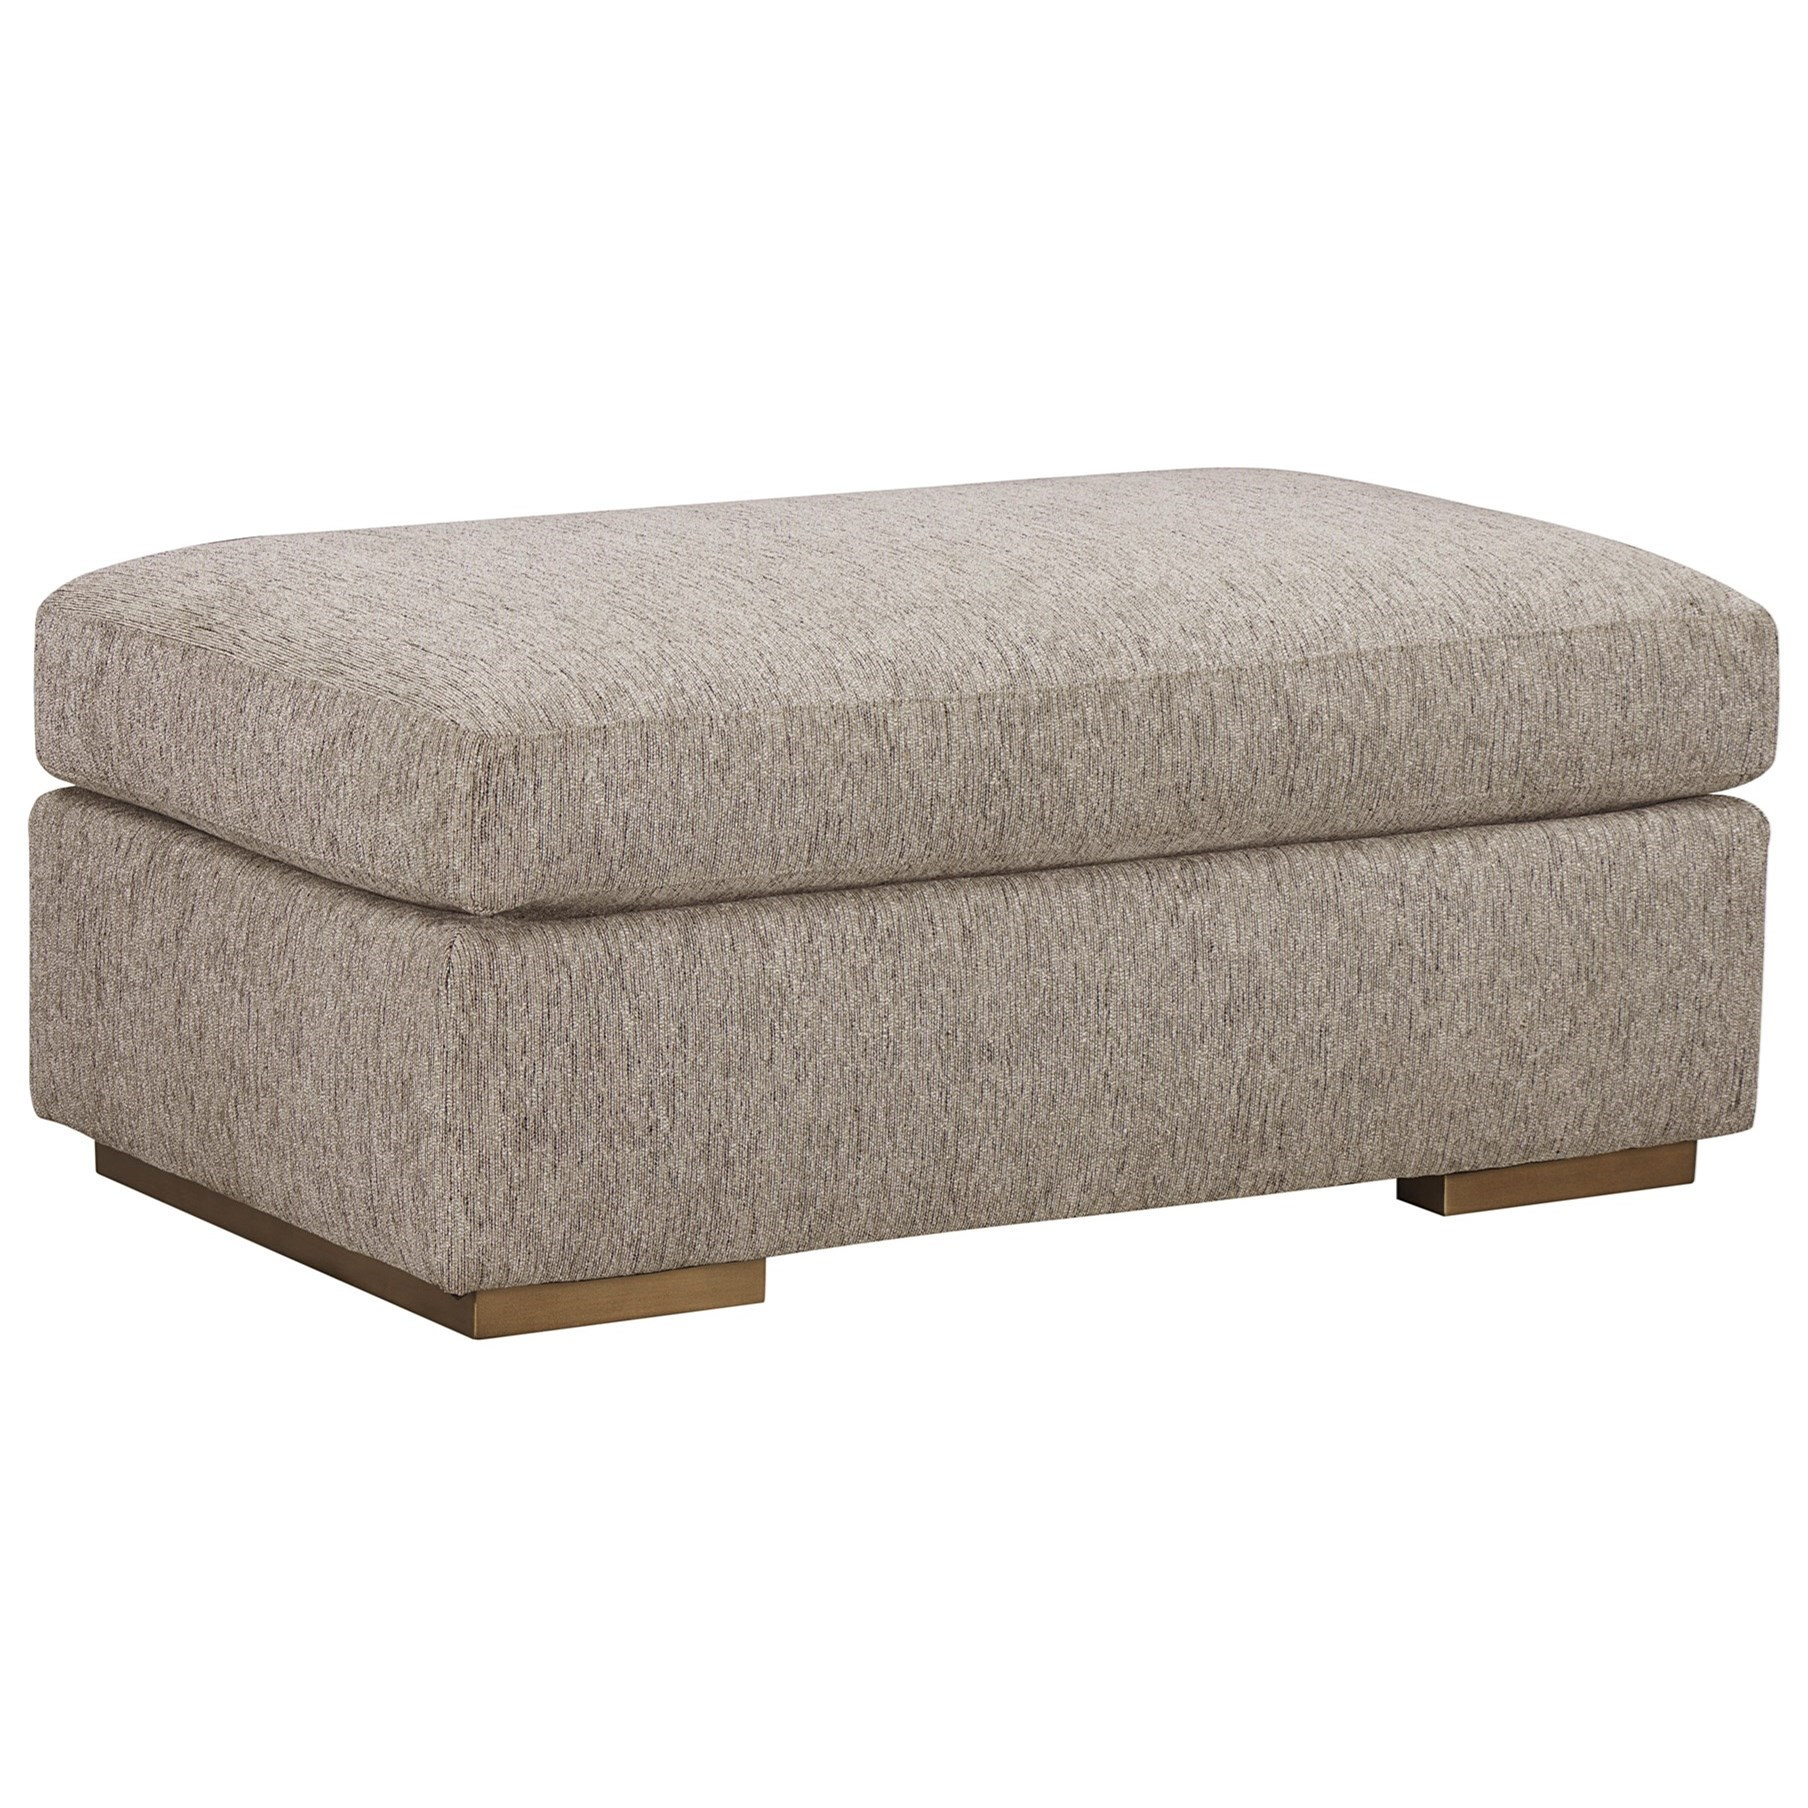 WoodWright Upholstery Ottoman by A.R.T. Furniture Inc at Home Collections Furniture